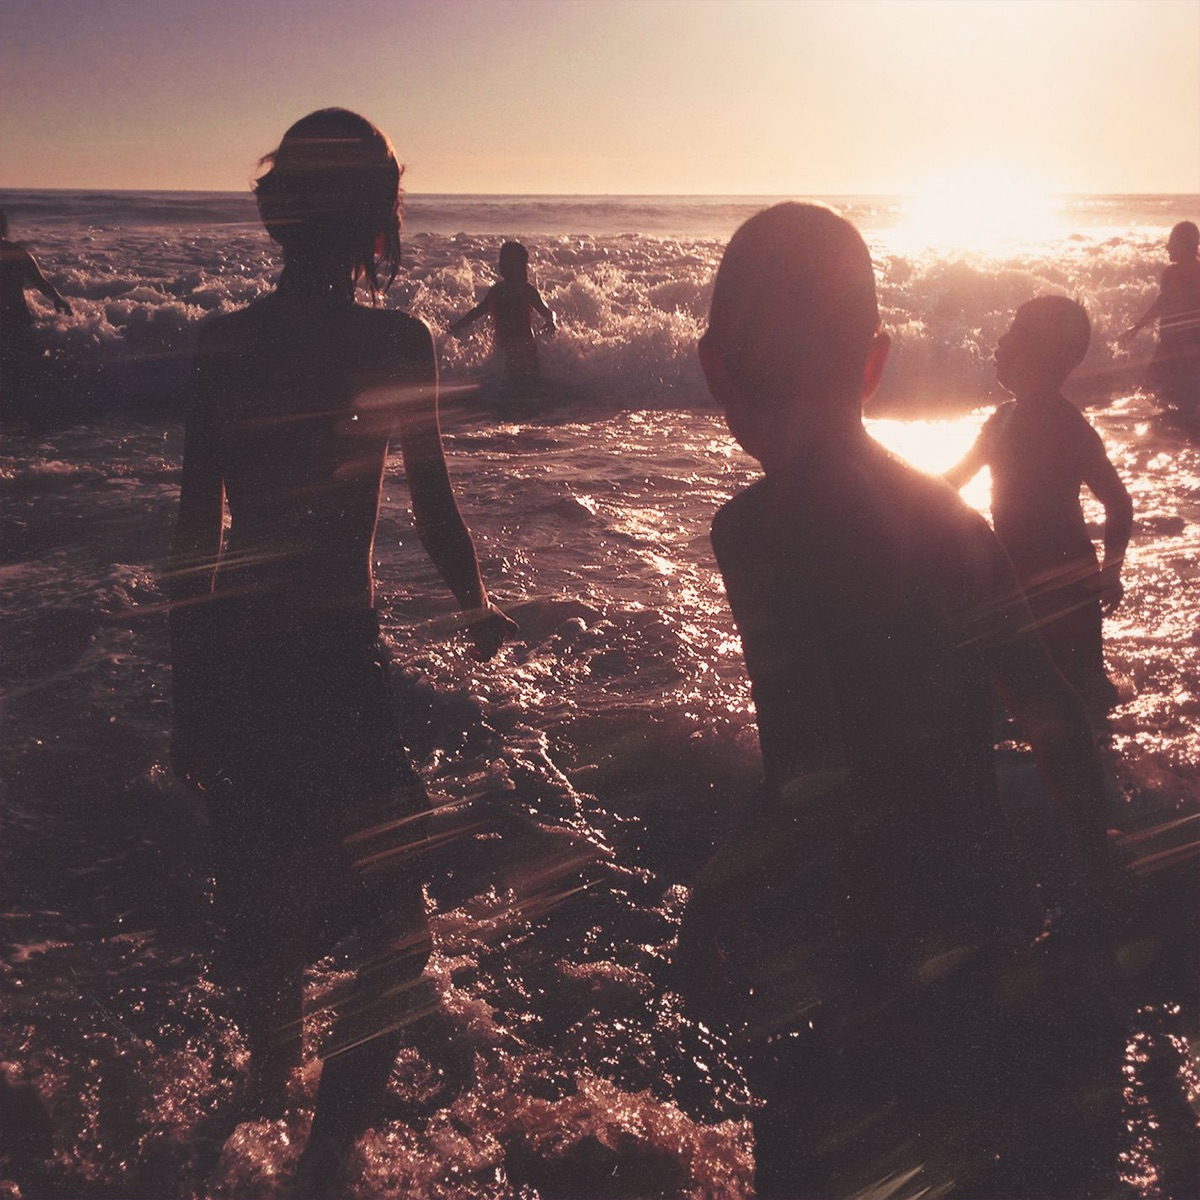 One More Light Album Cover By Linkin Park